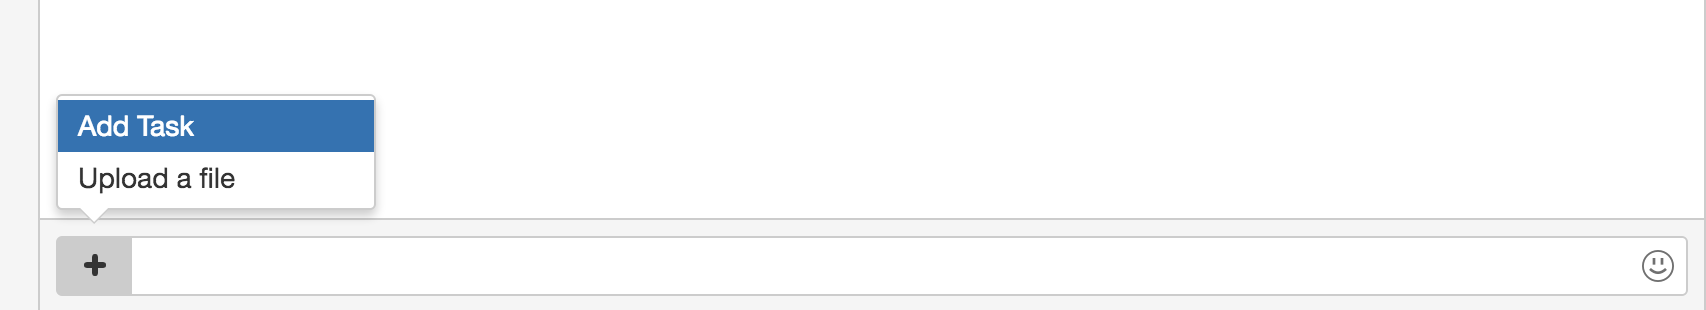 MeisterTask HipChat - Add a task from the message input